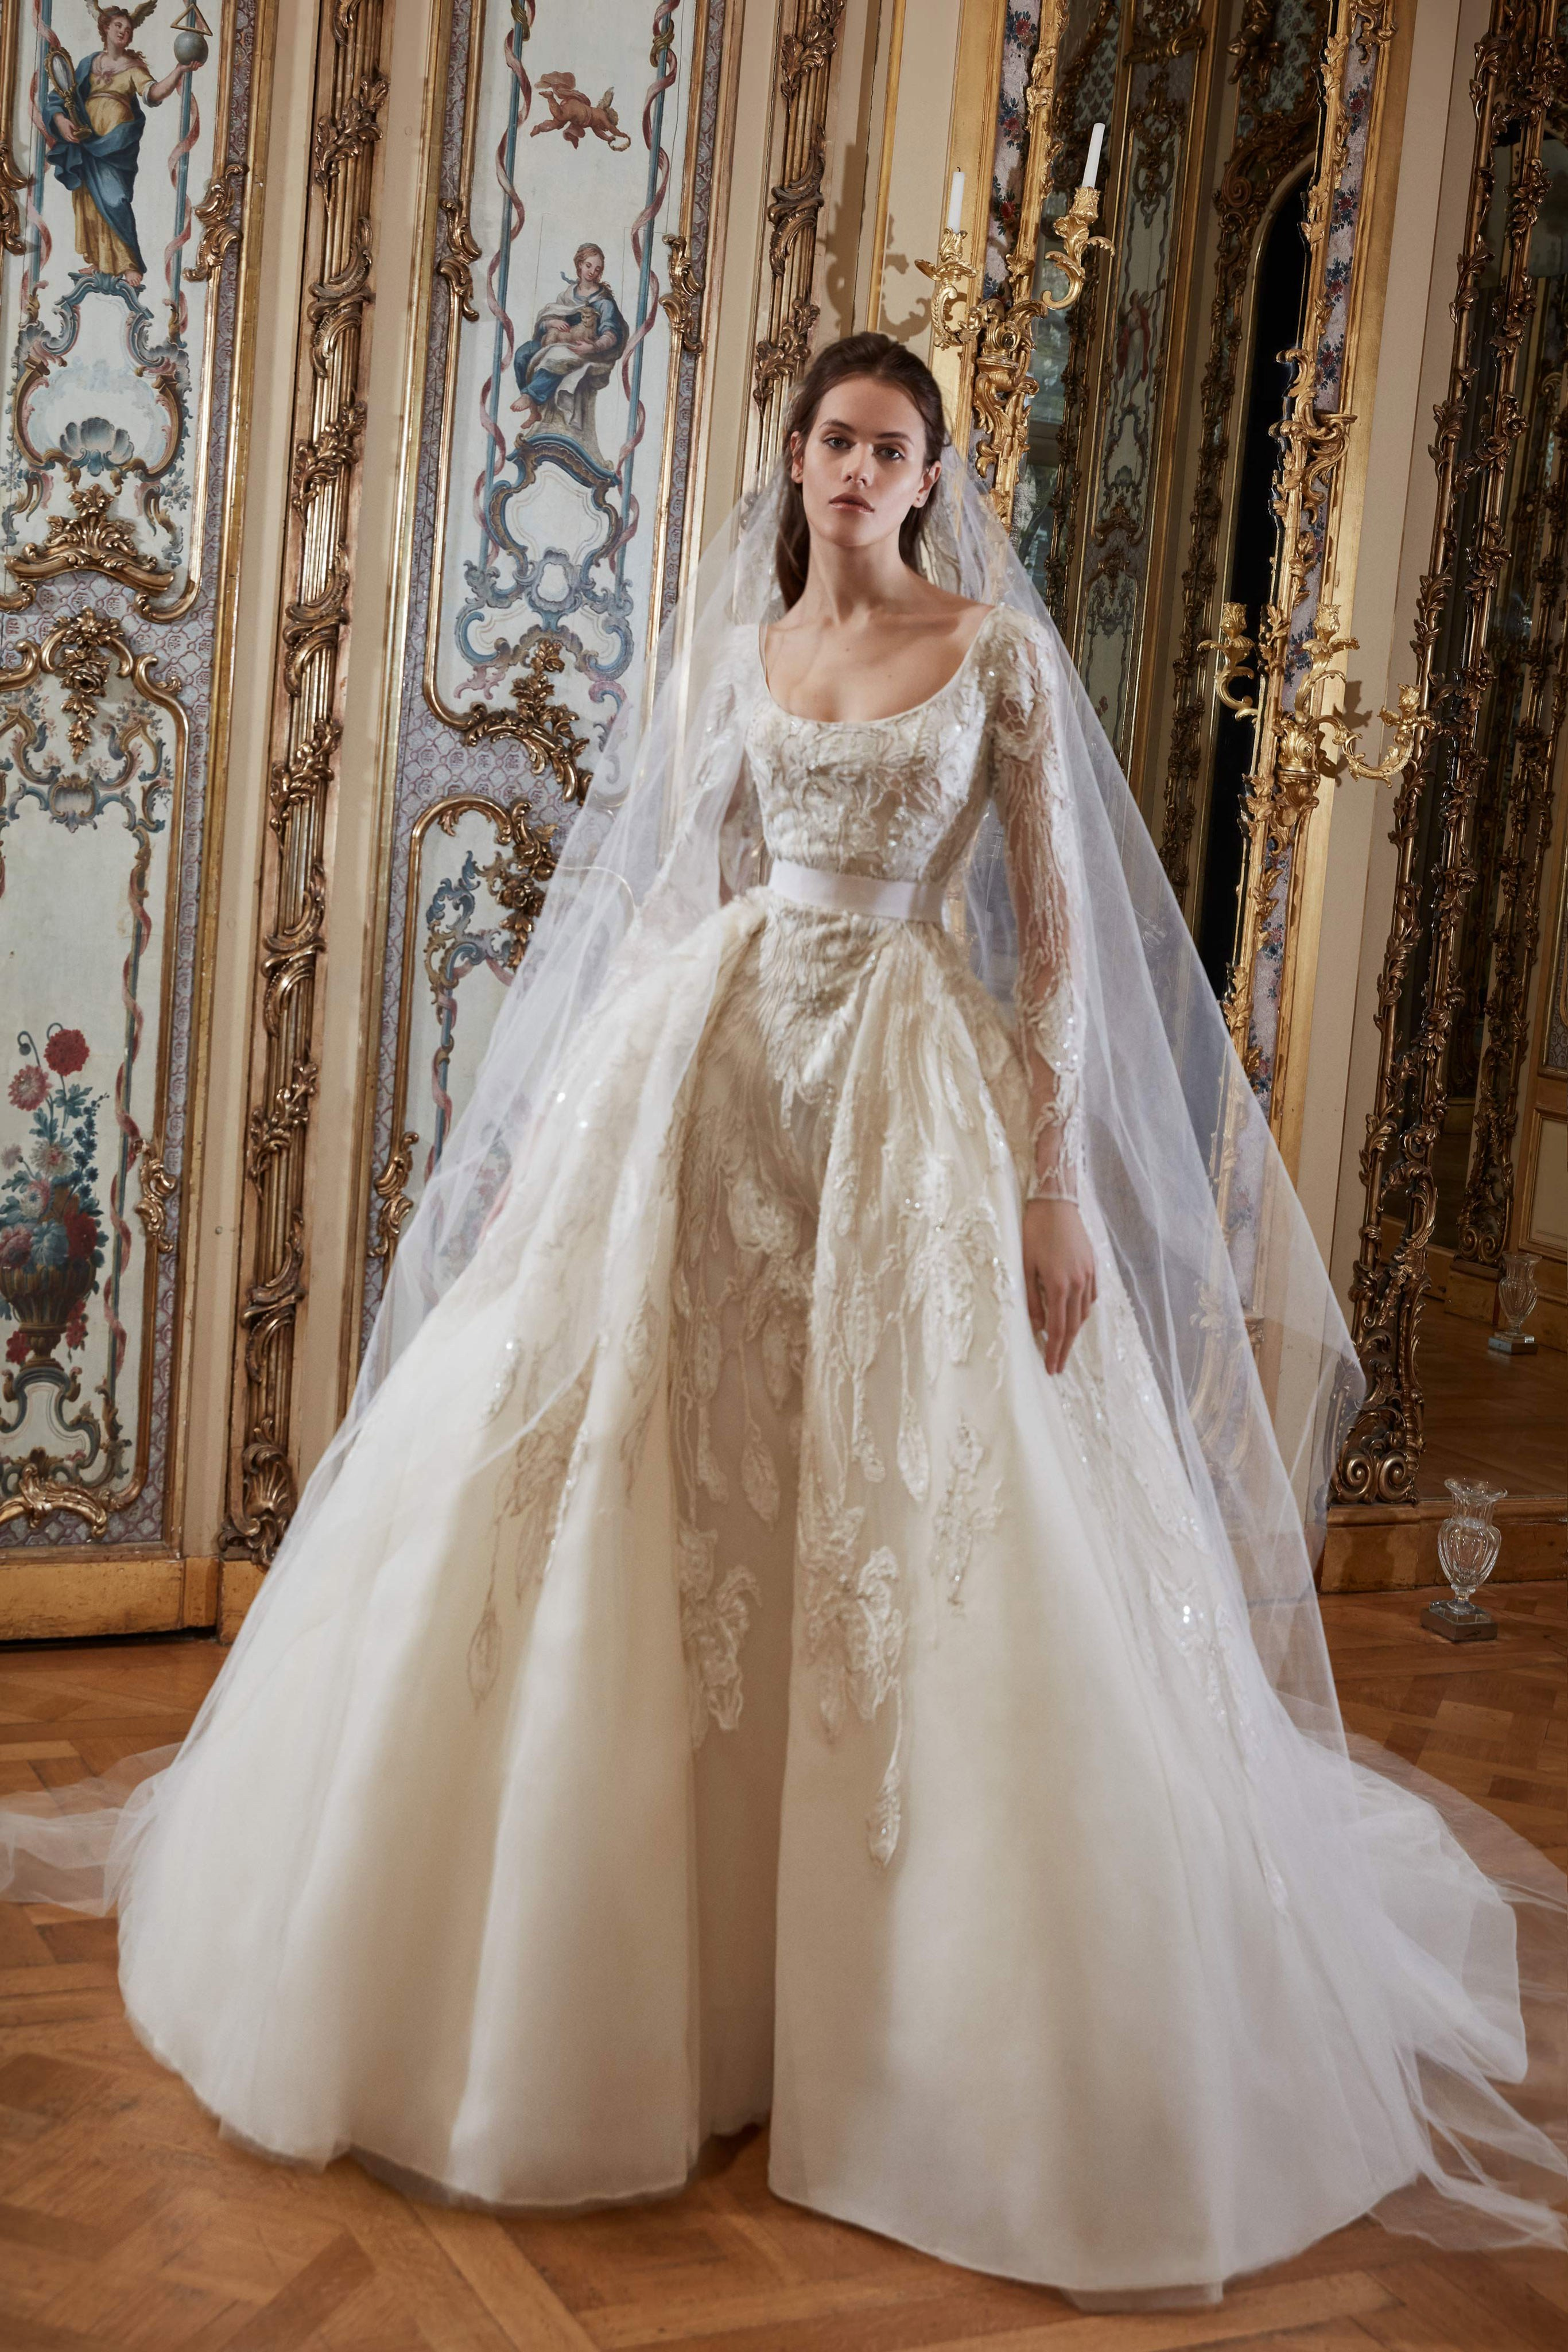 monique lhuillier wedding dresses photo - 1